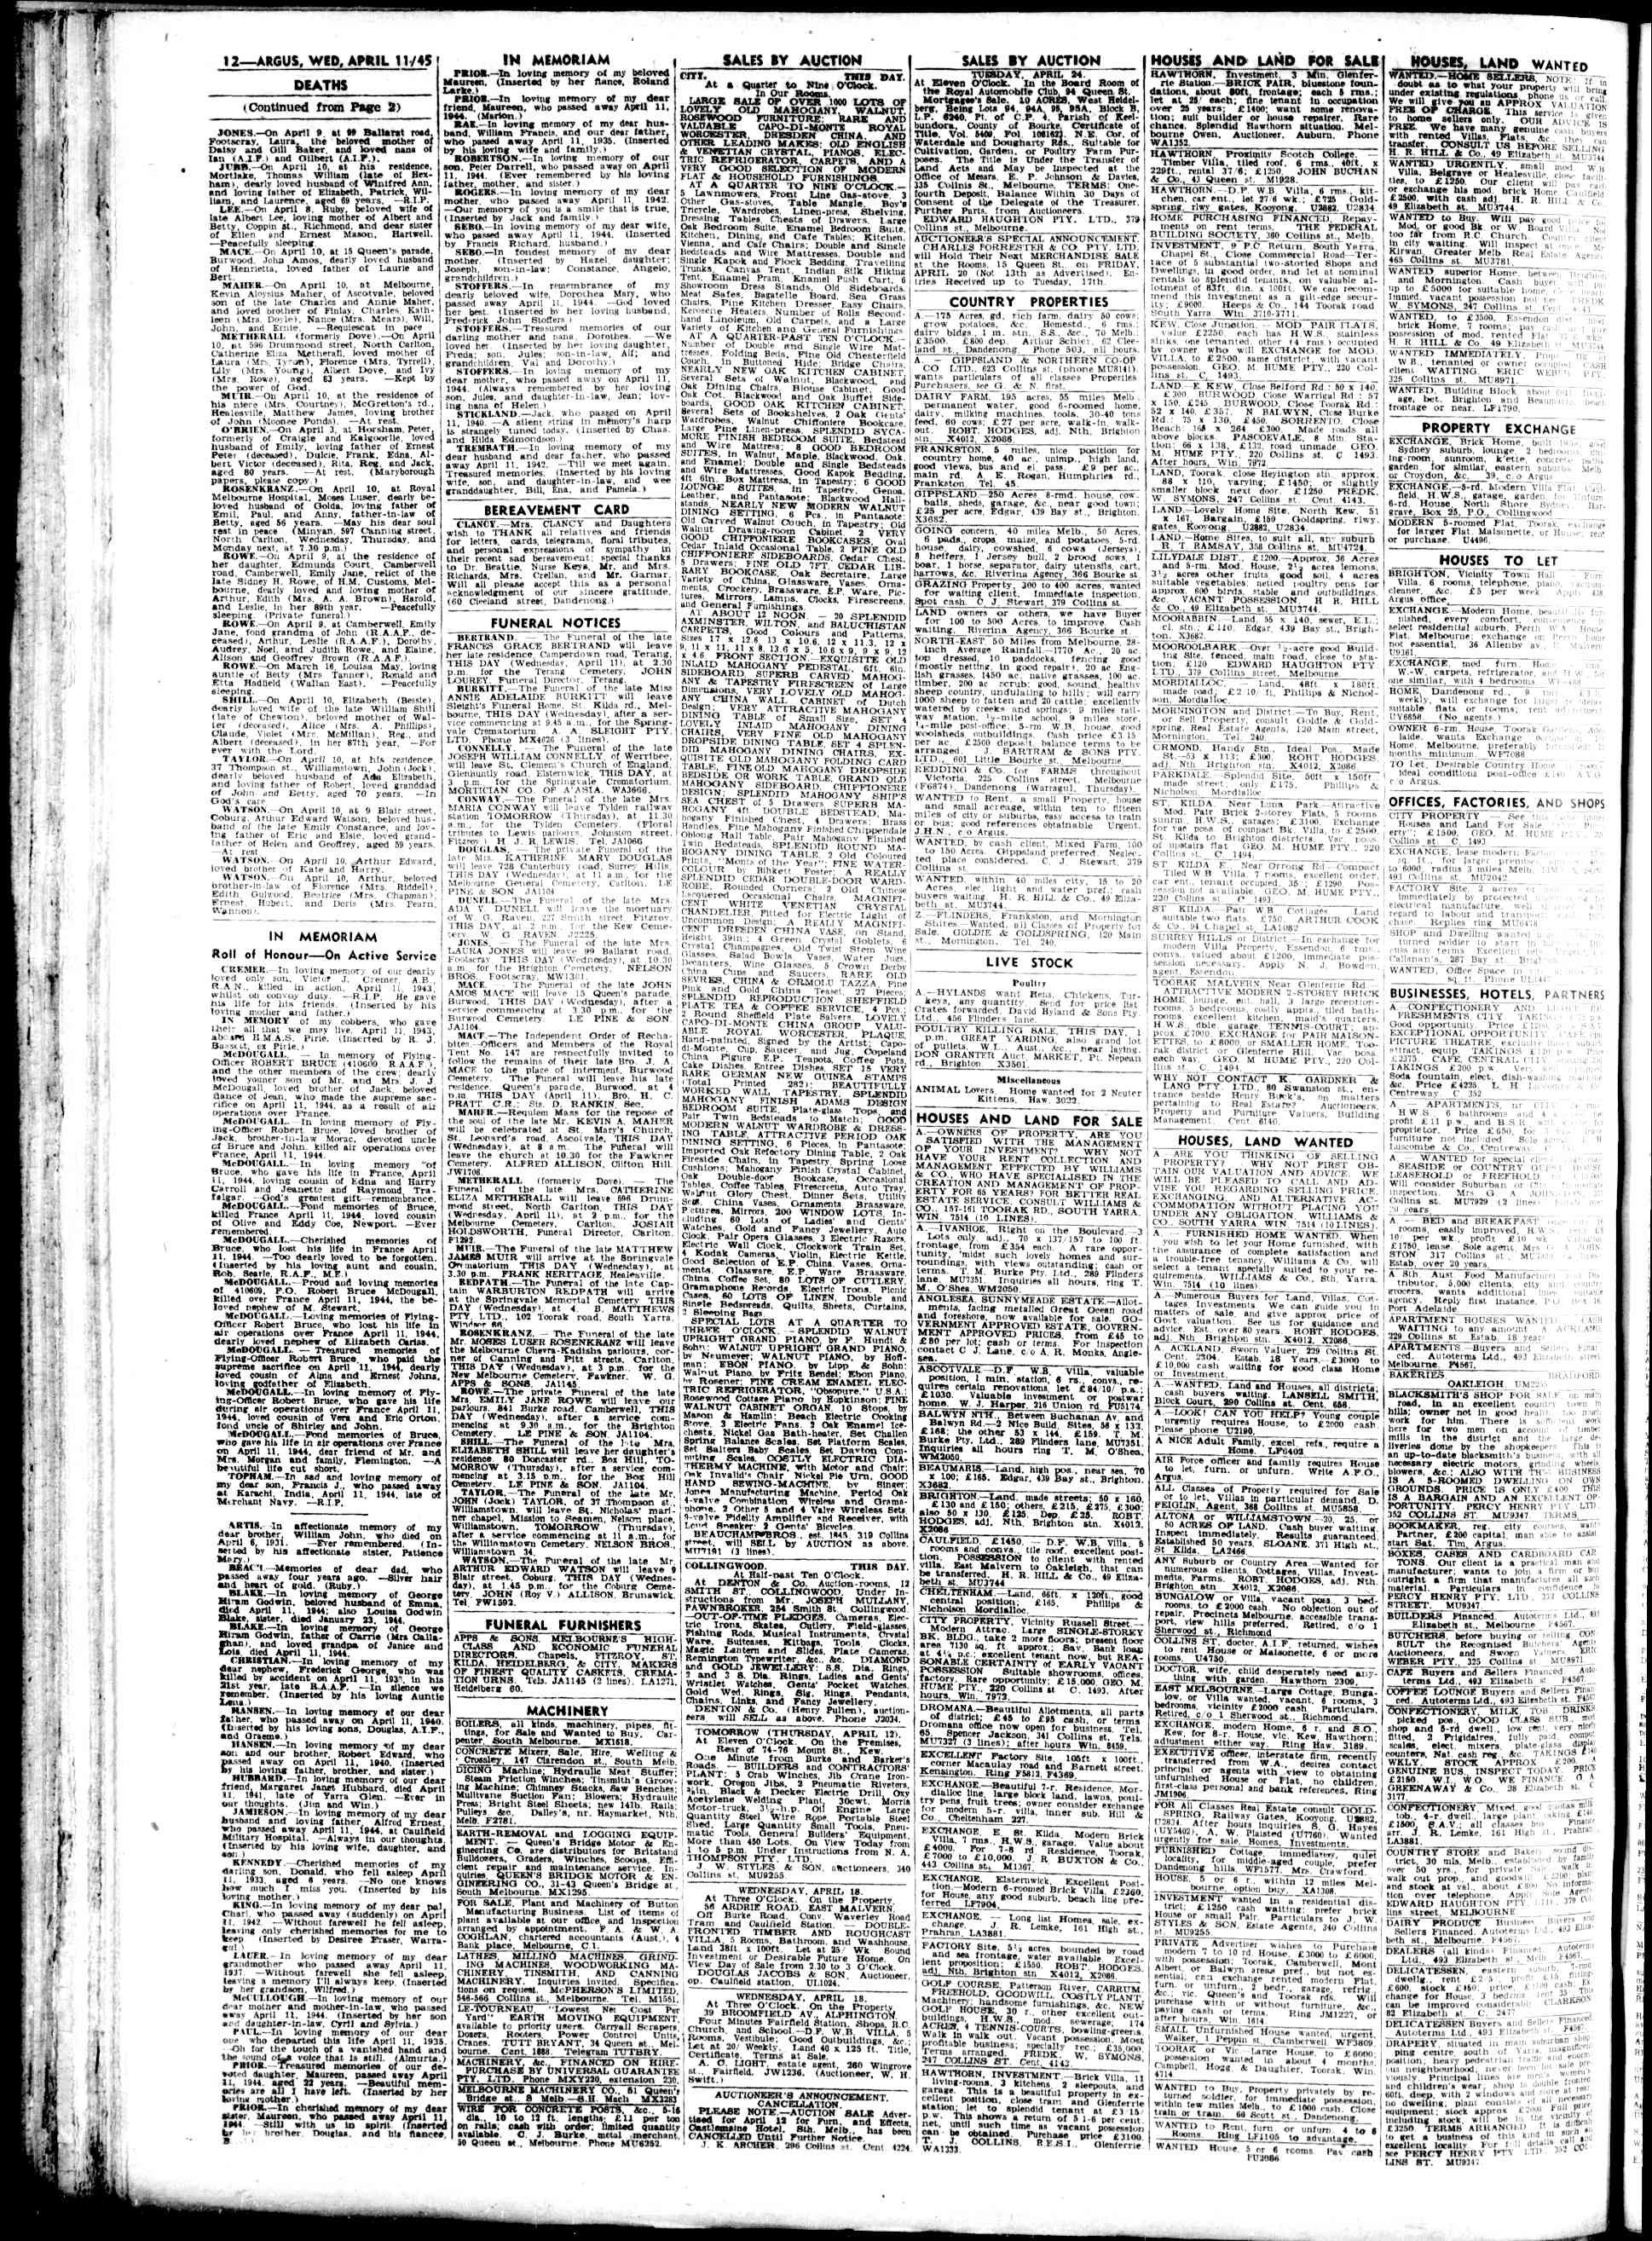 Argus melbourne vic australian newspapers myheritage discover your ancestry search birth marriage and death certificates census records immigration lists and other records all in one family search aiddatafo Choice Image